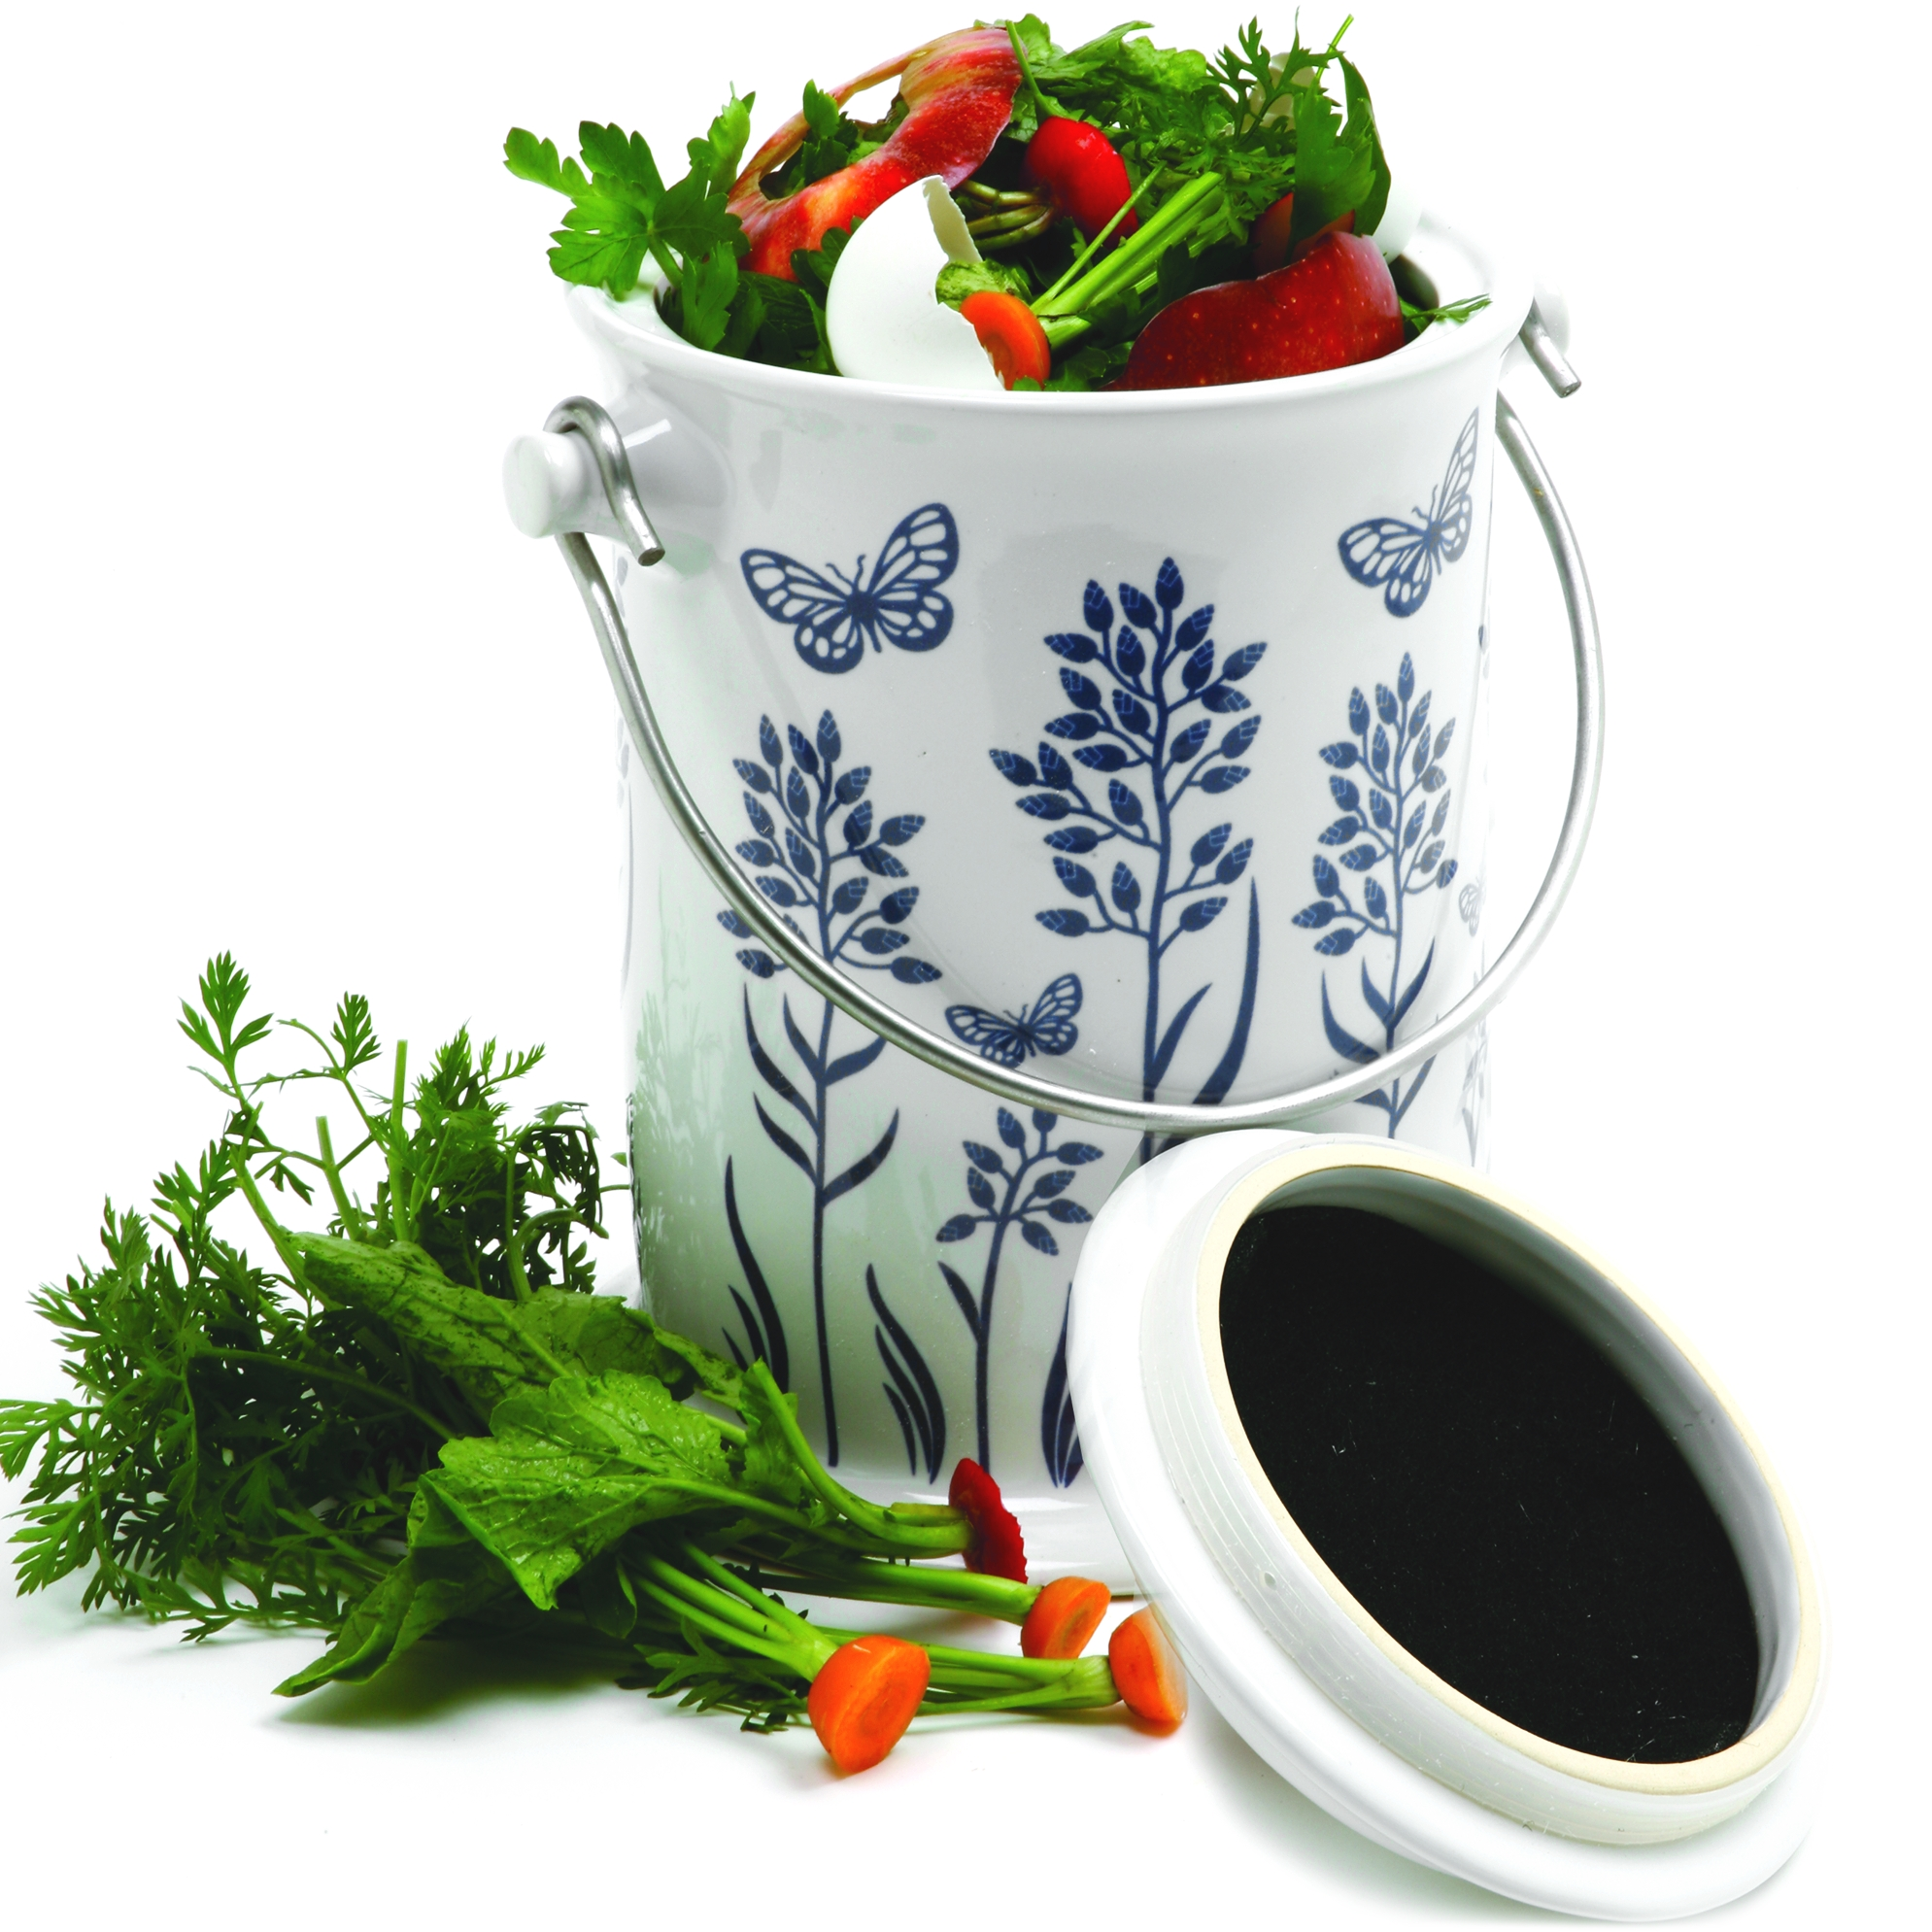 Norpro Blue and White Ceramic Floral Compost Keeper, 3 Quart